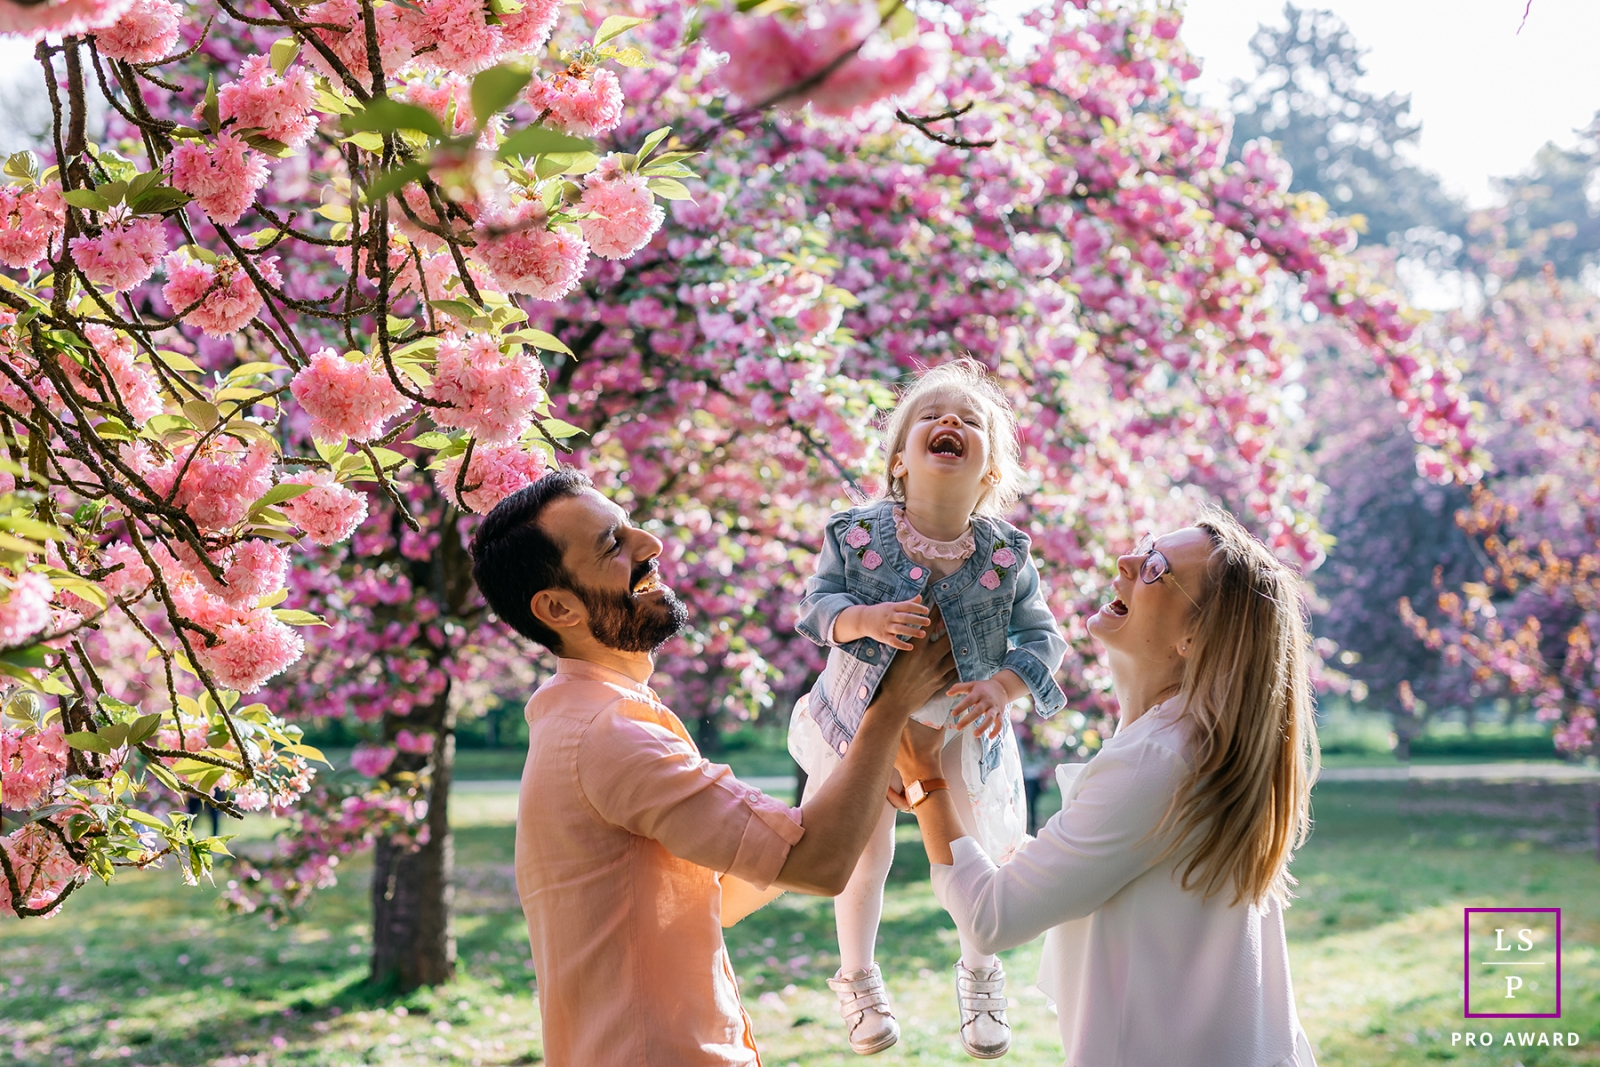 Occitanie Lifestyle Family Portrait Session in Herault   Photo contains: bloom, blossom, tree, girl, mom, dad, outdoors